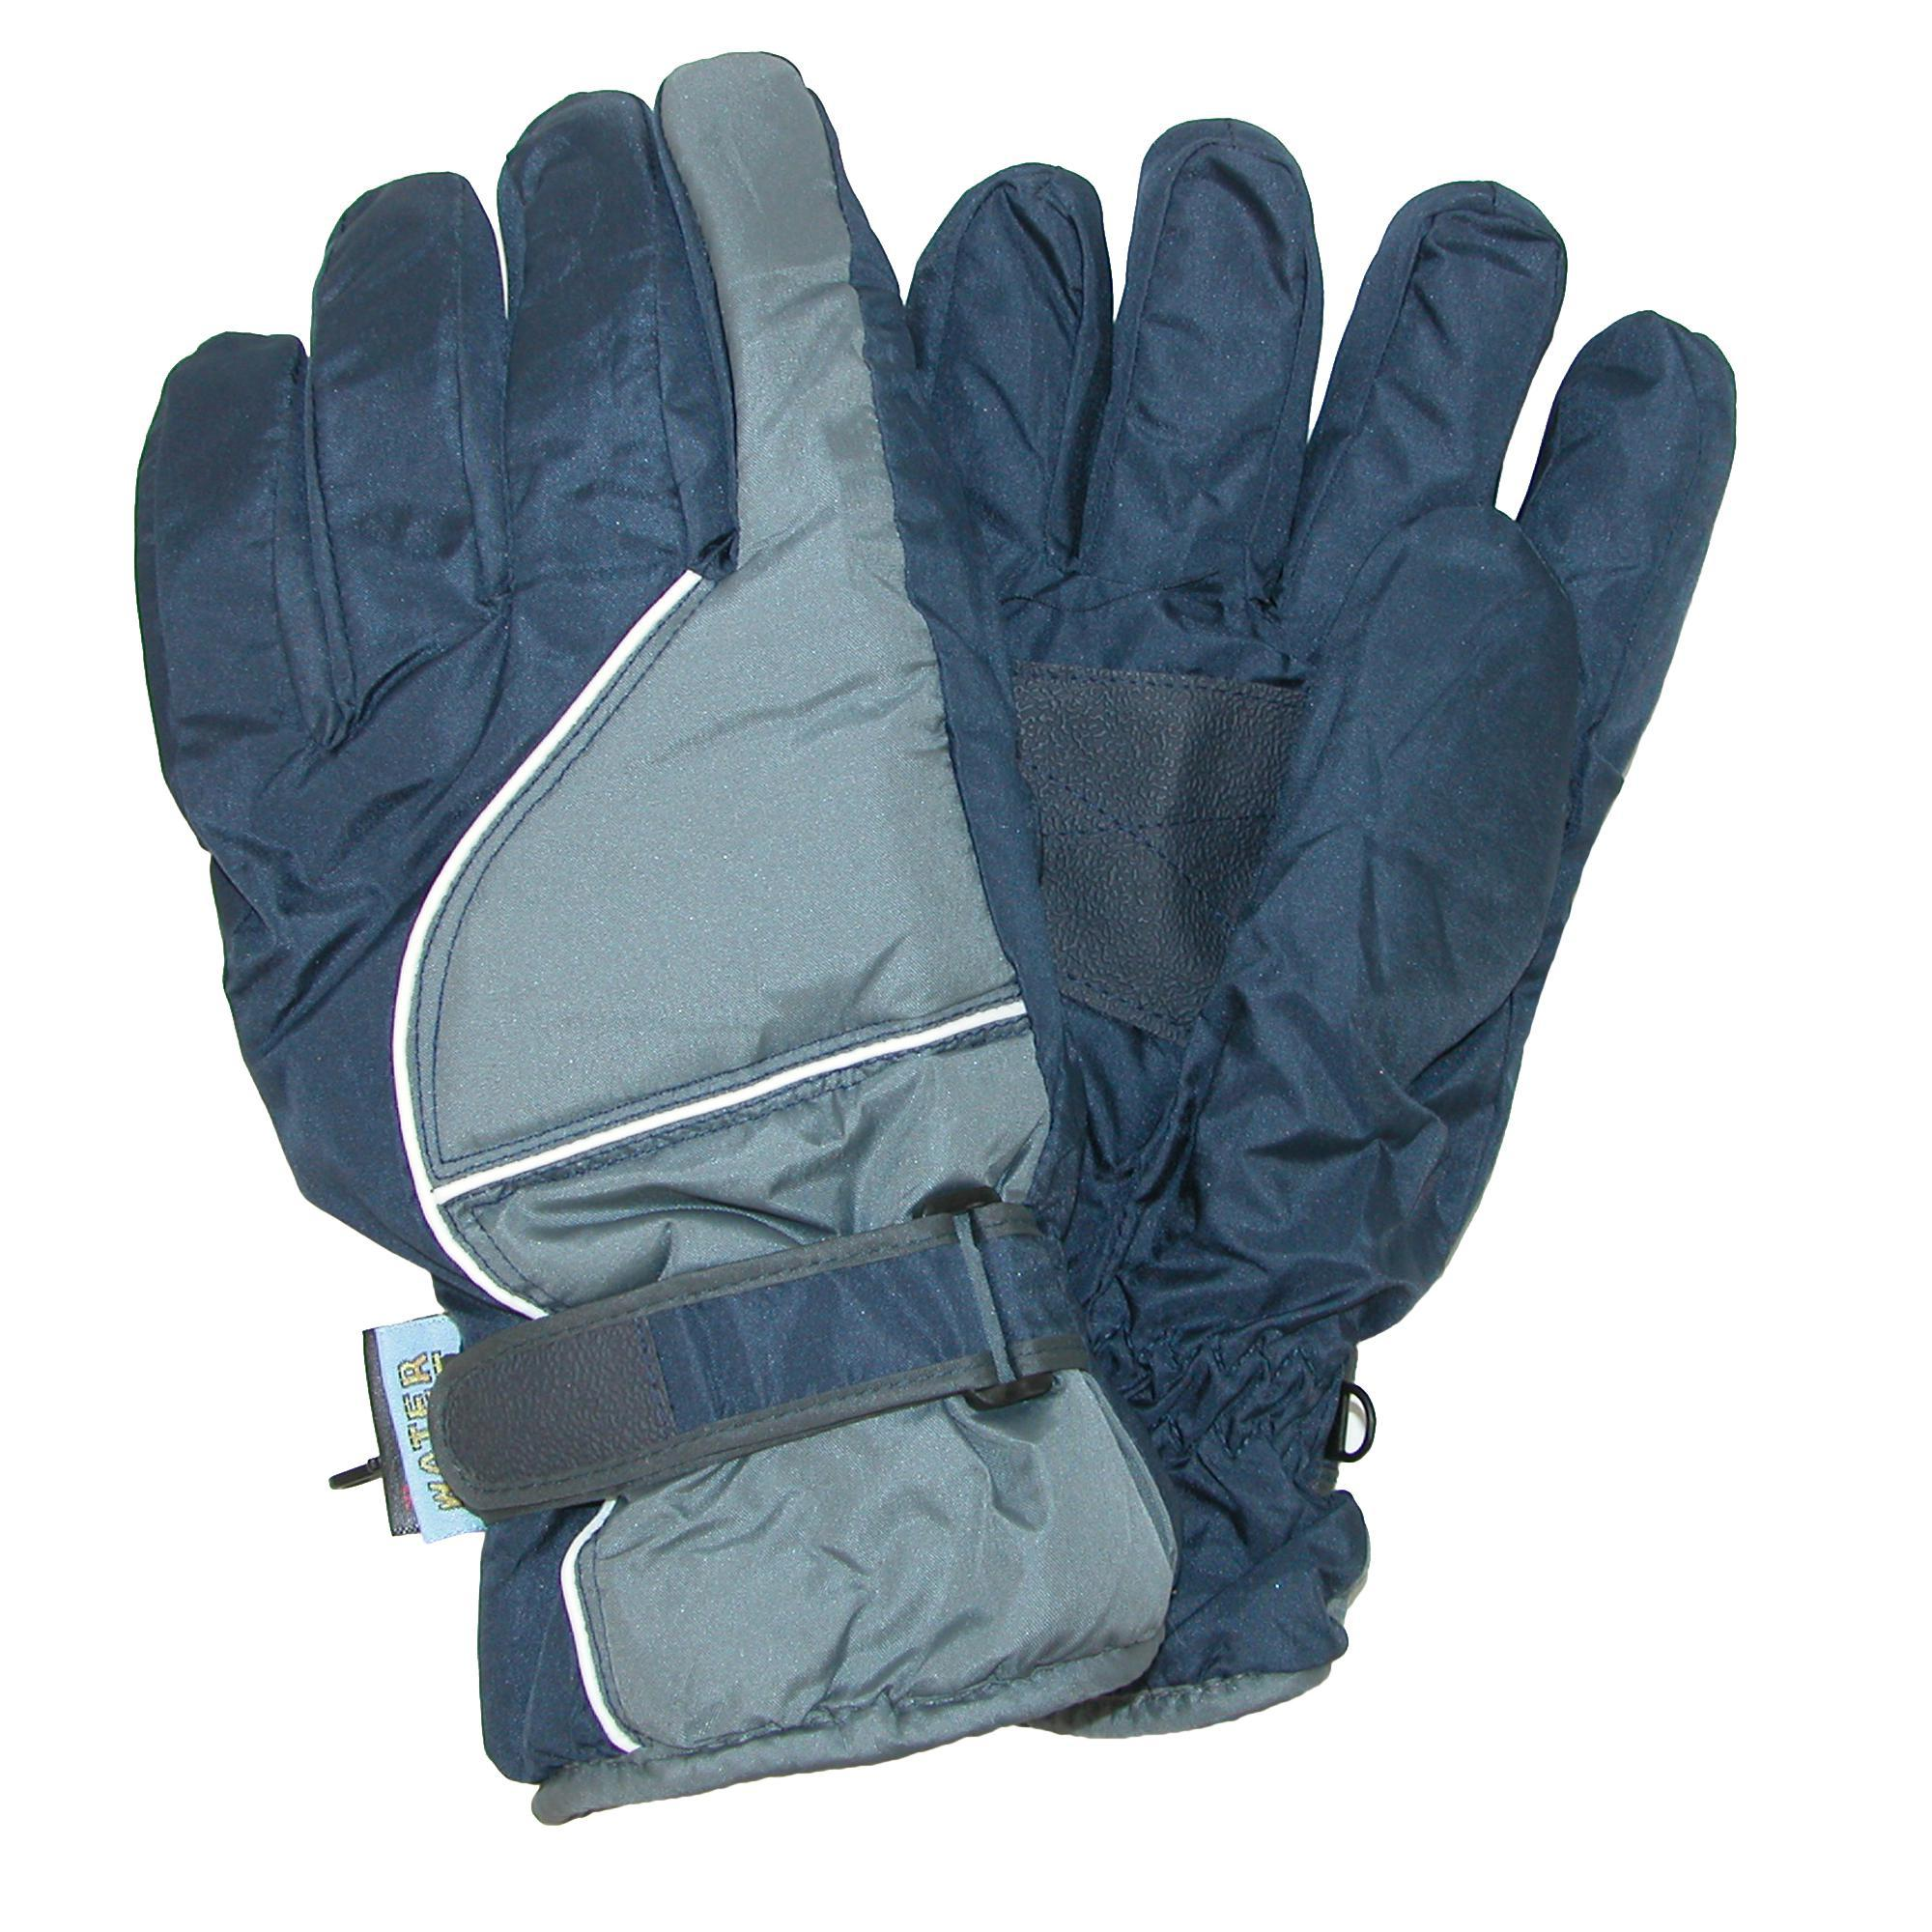 Ctm Mens Waterproof Ski Gloves With Contrast Piping